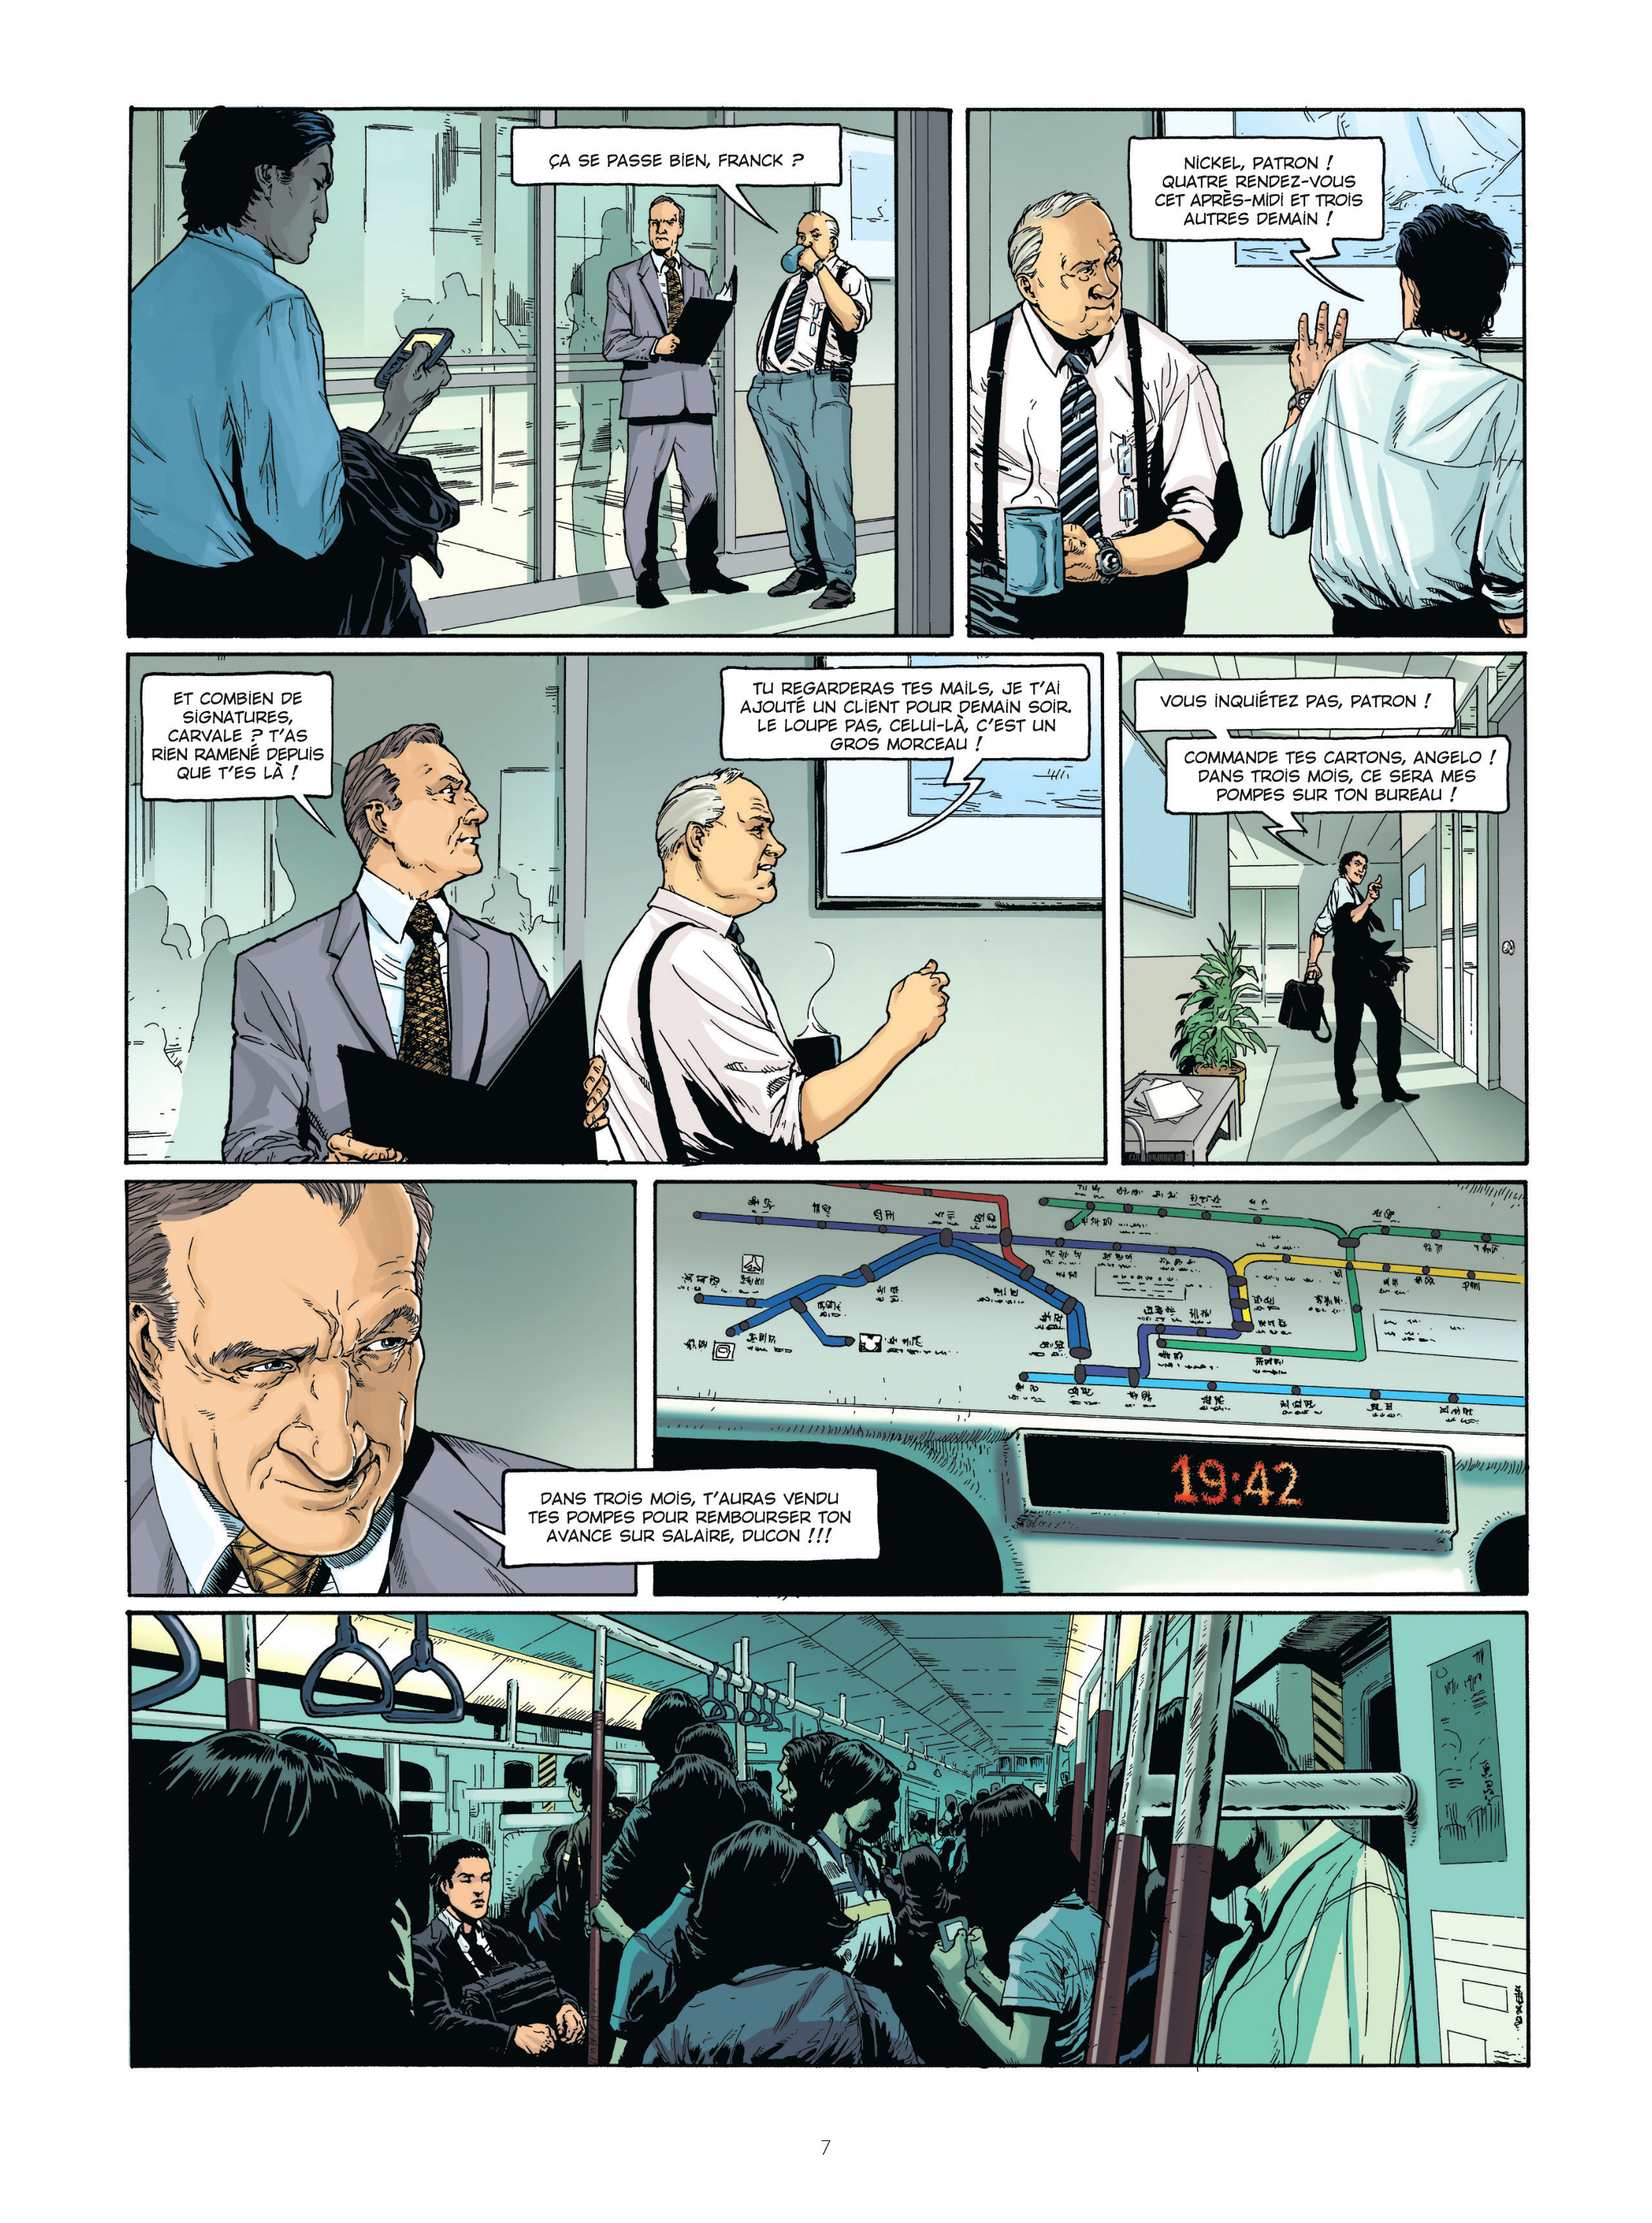 hedge_fund#1_Page 7